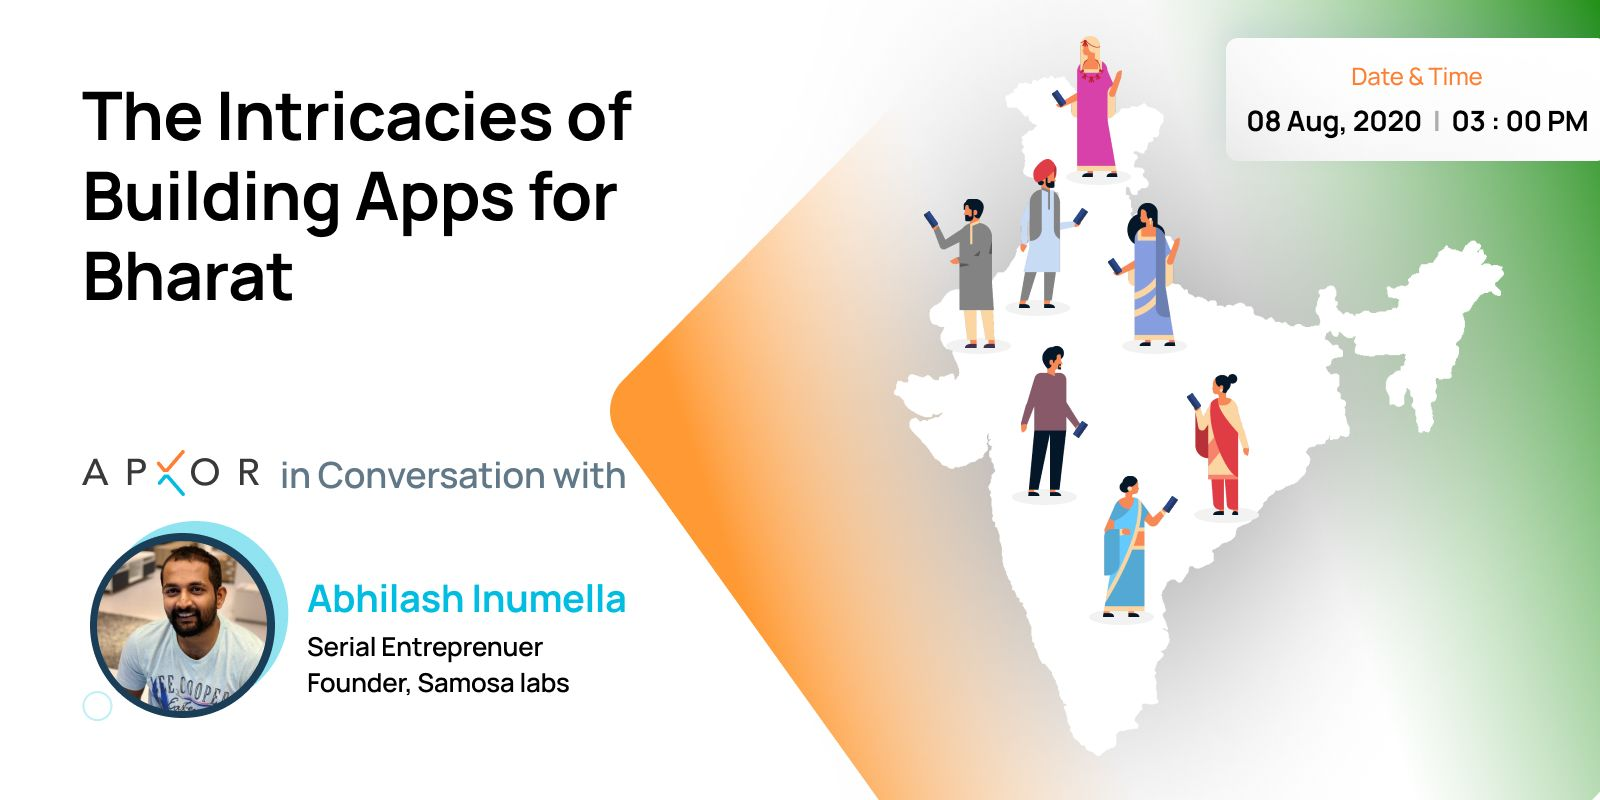 The Intricacies of Building Apps for Bharat - Open Discussion